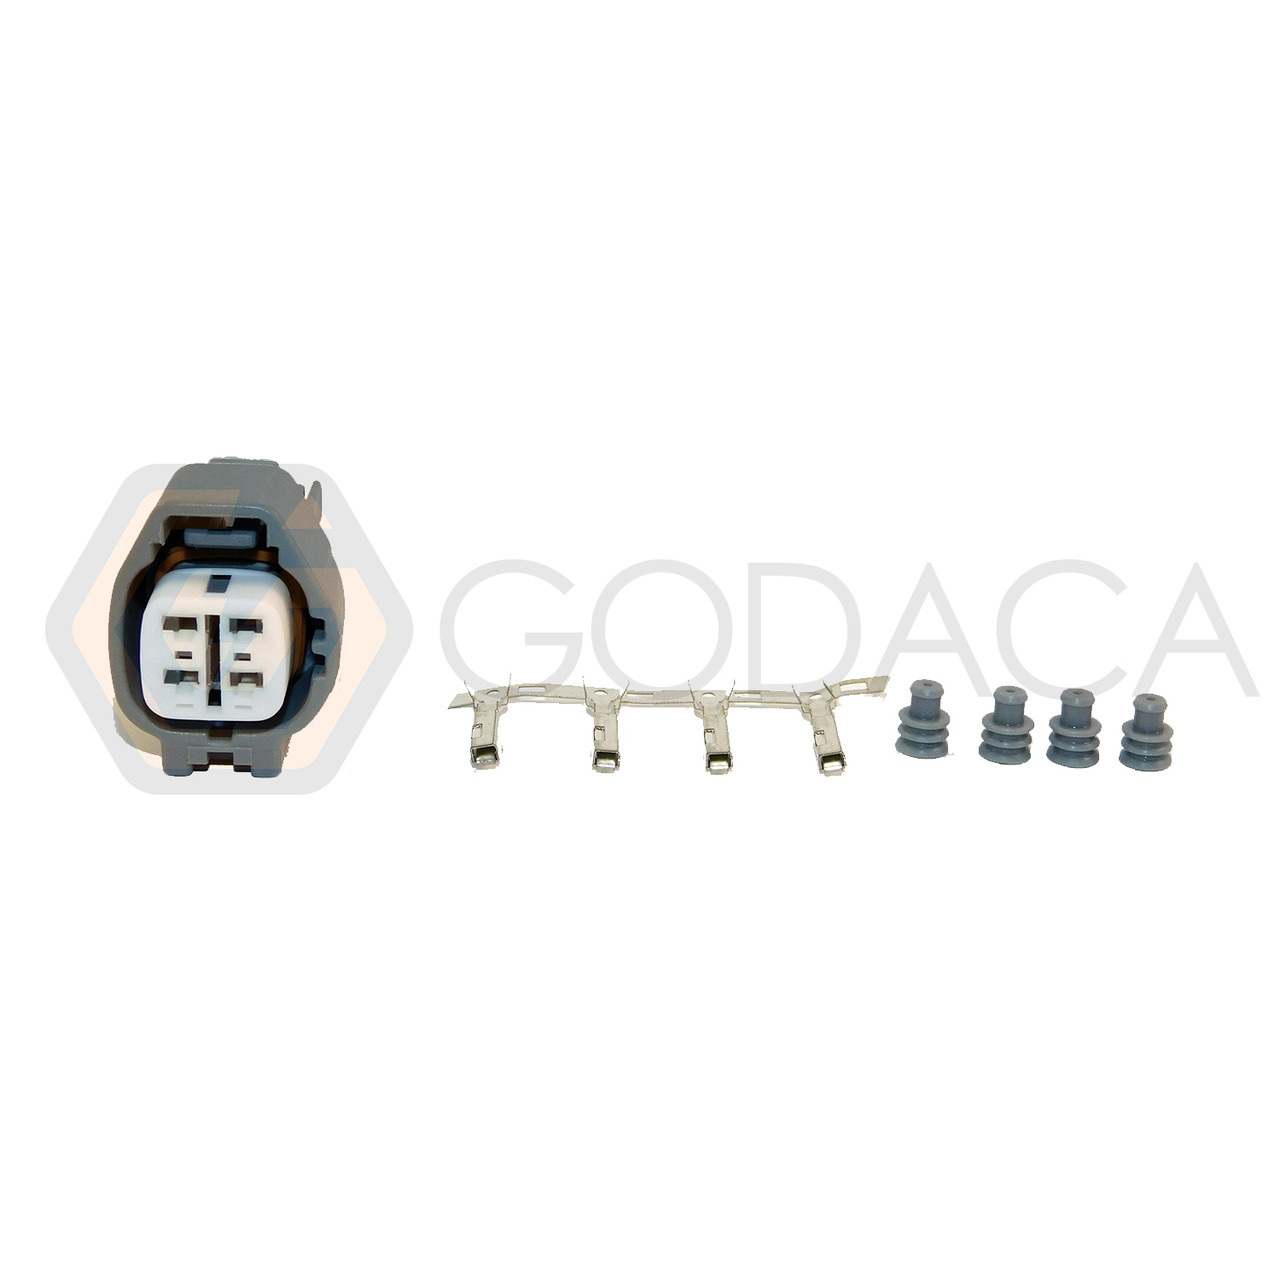 1x connector 4 pin 4-way for oxygen sensor 90980-11178 w/out wire - godaca,  llc